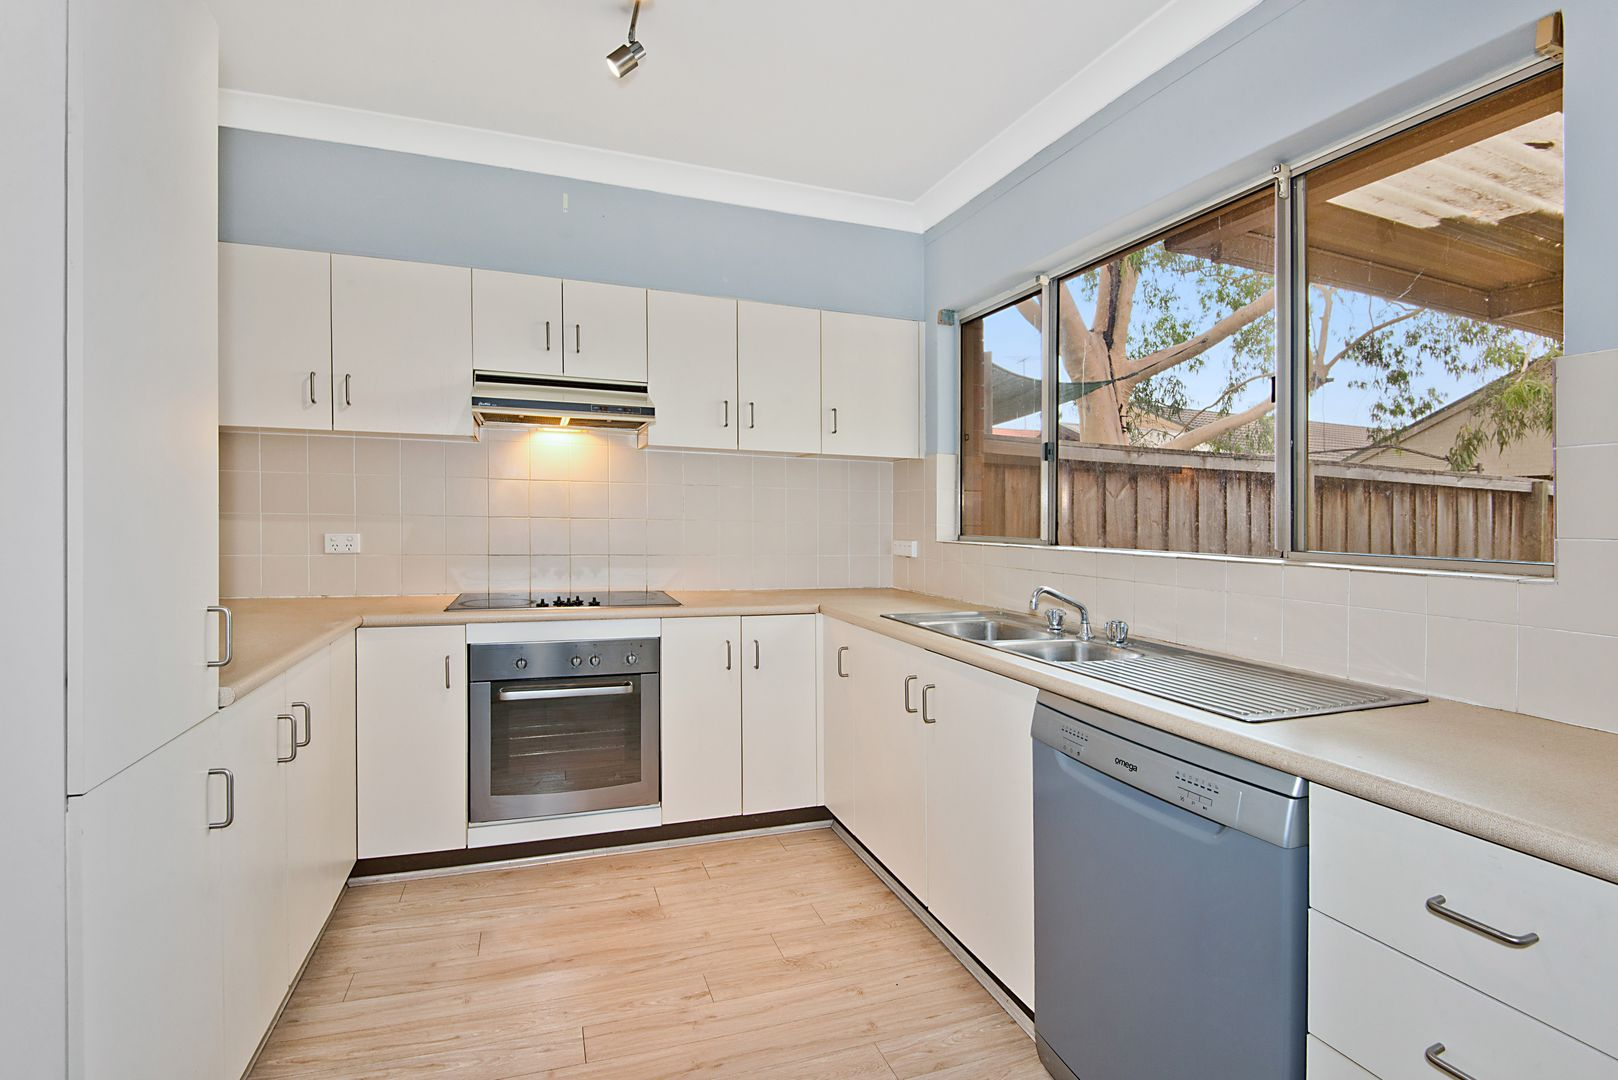 13/169 Walker Street, Quakers Hill NSW 2763, Image 1